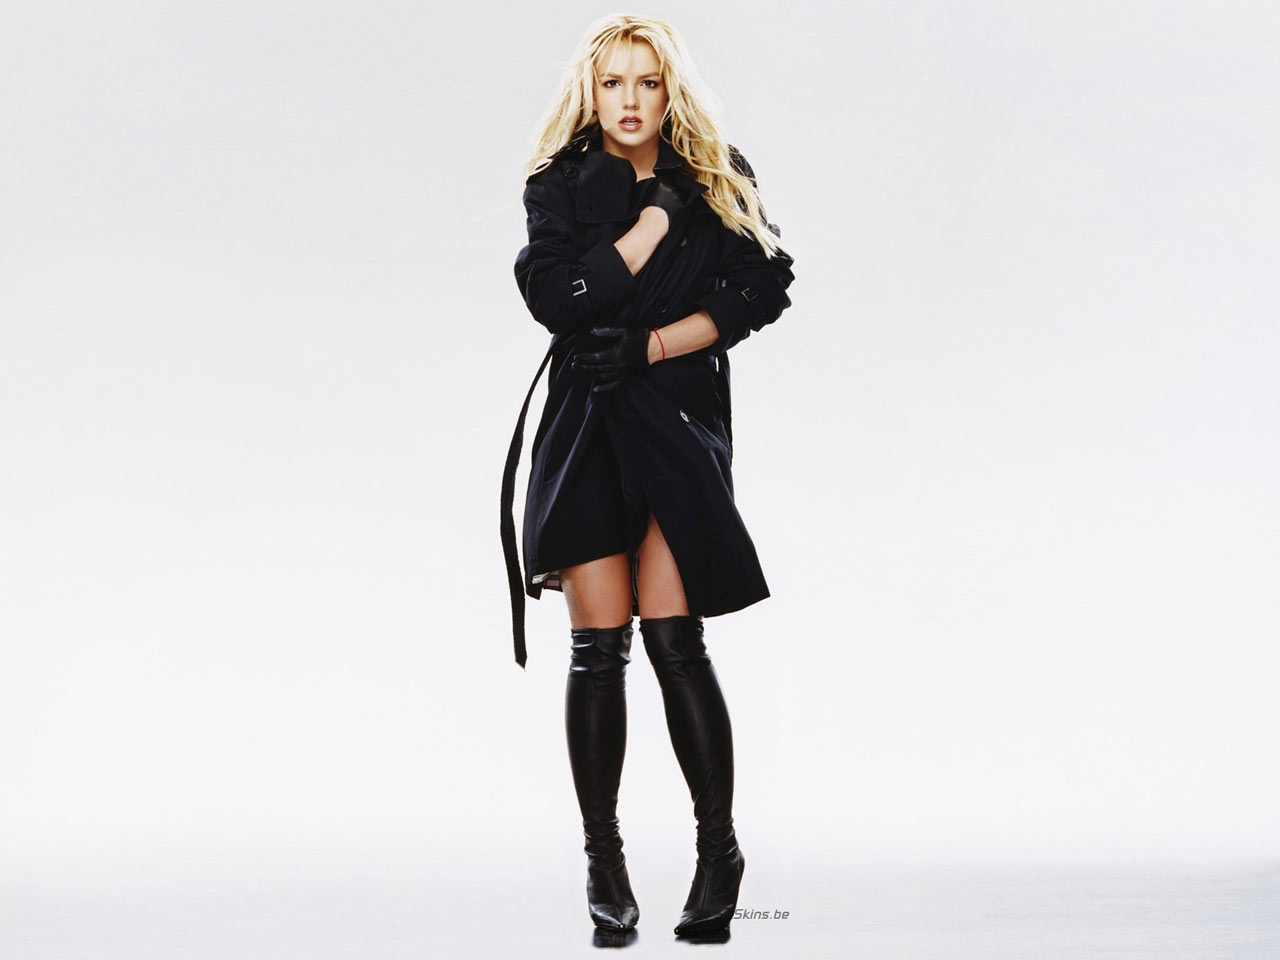 Britney Spears Bold Pics Sexy Hot images in Seducing Poses